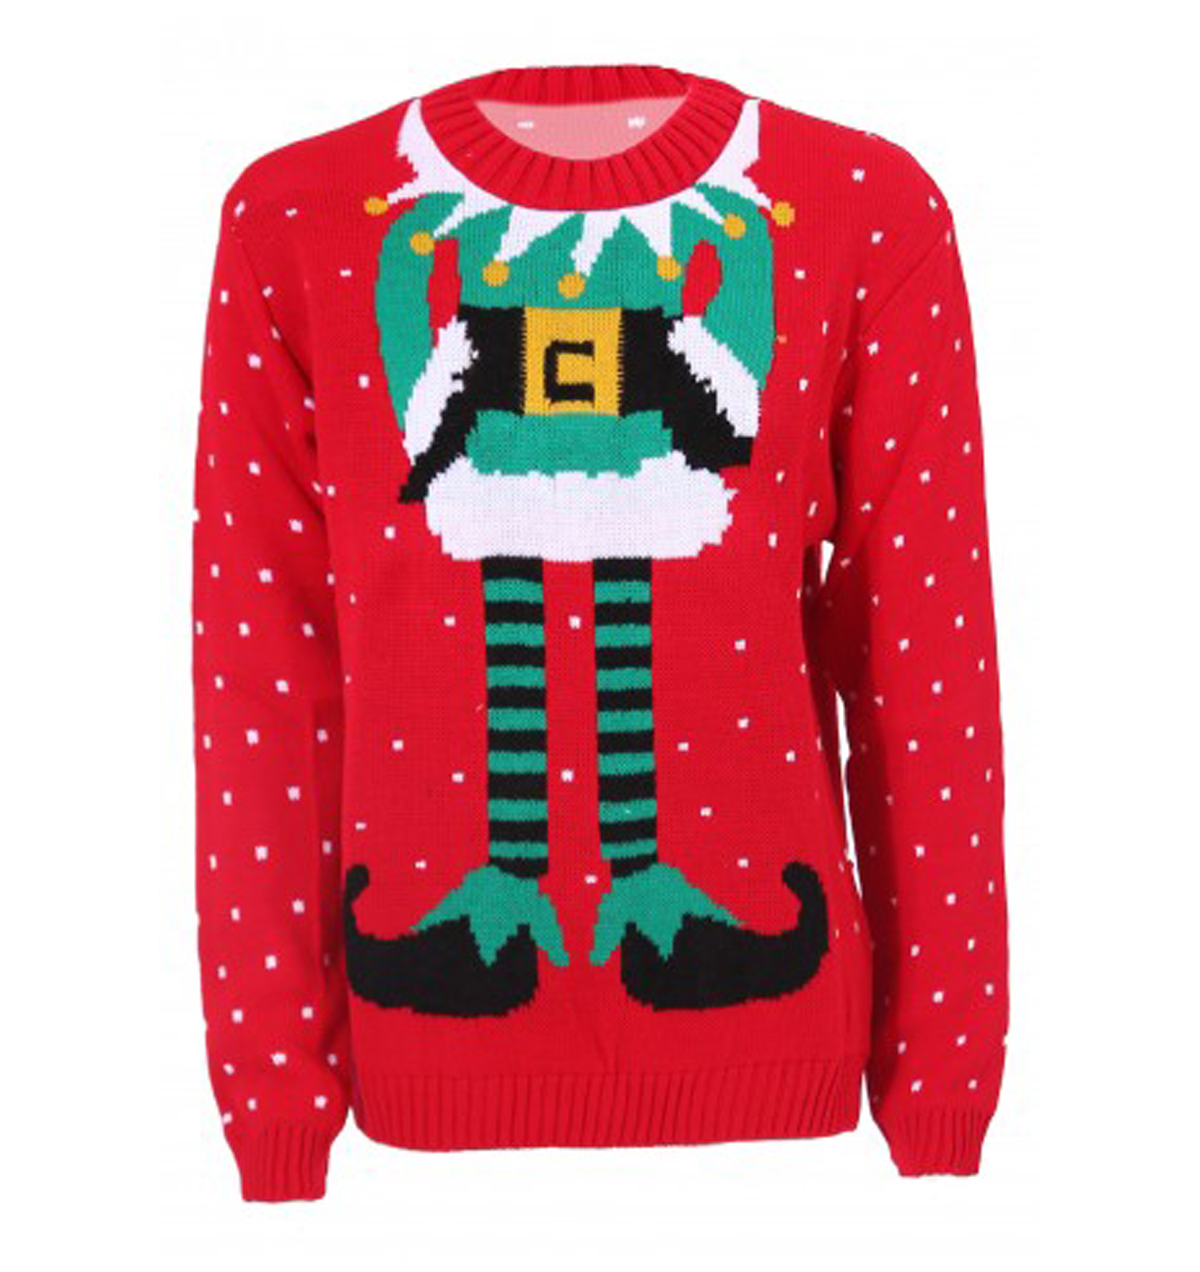 Elf Body Ugly Christmas sweaters in Red - Ugly Christmas Sweaters ...